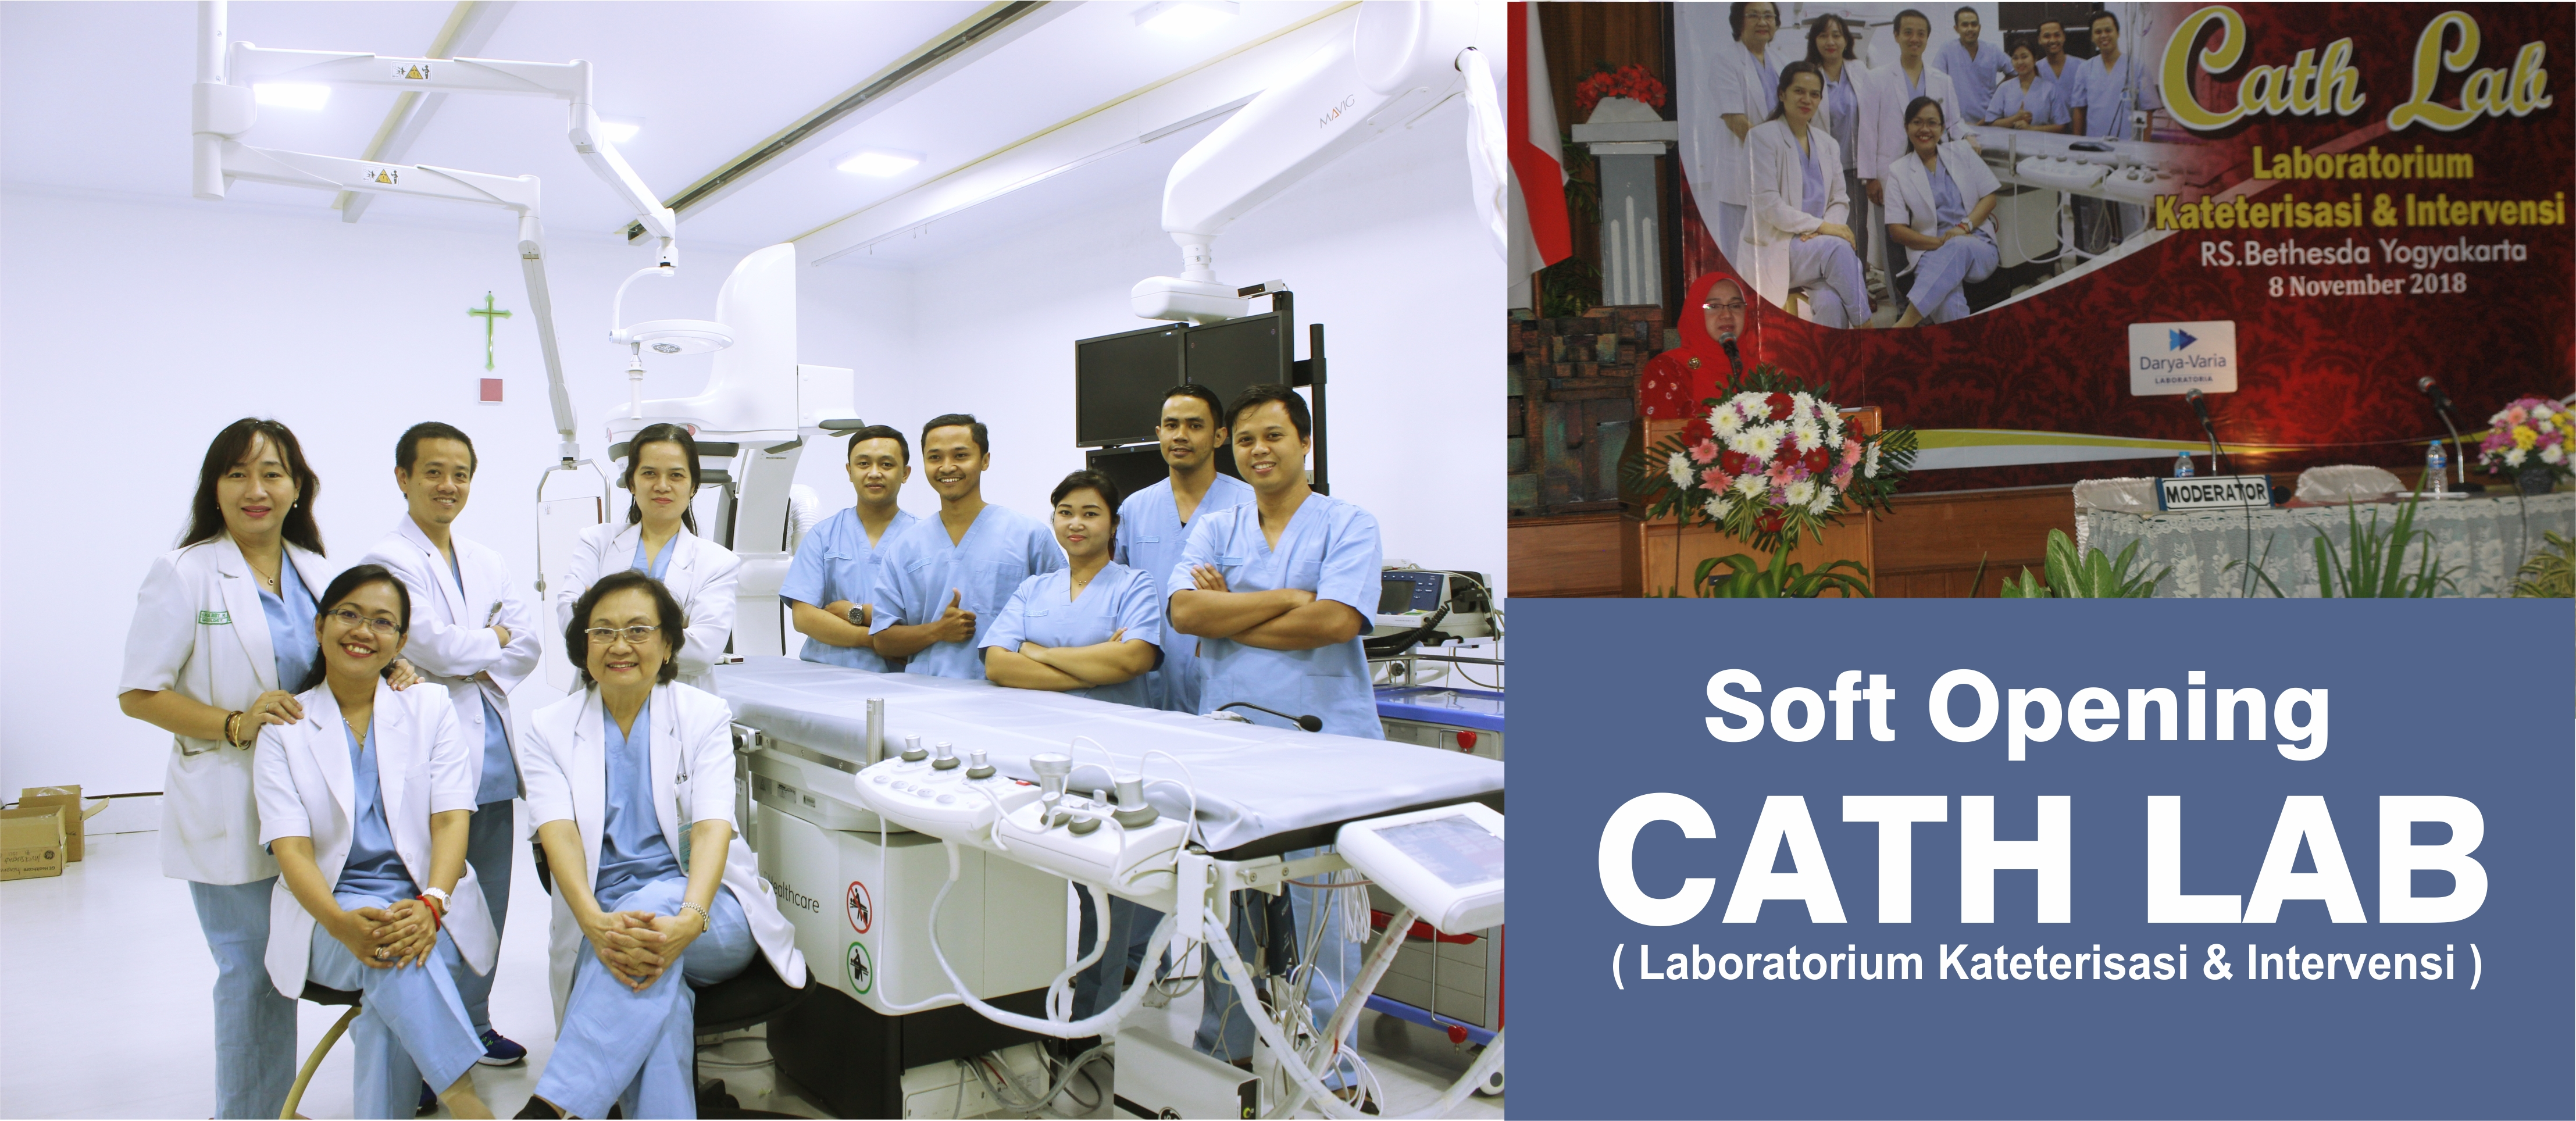 SOFT OPENING CATH LAB